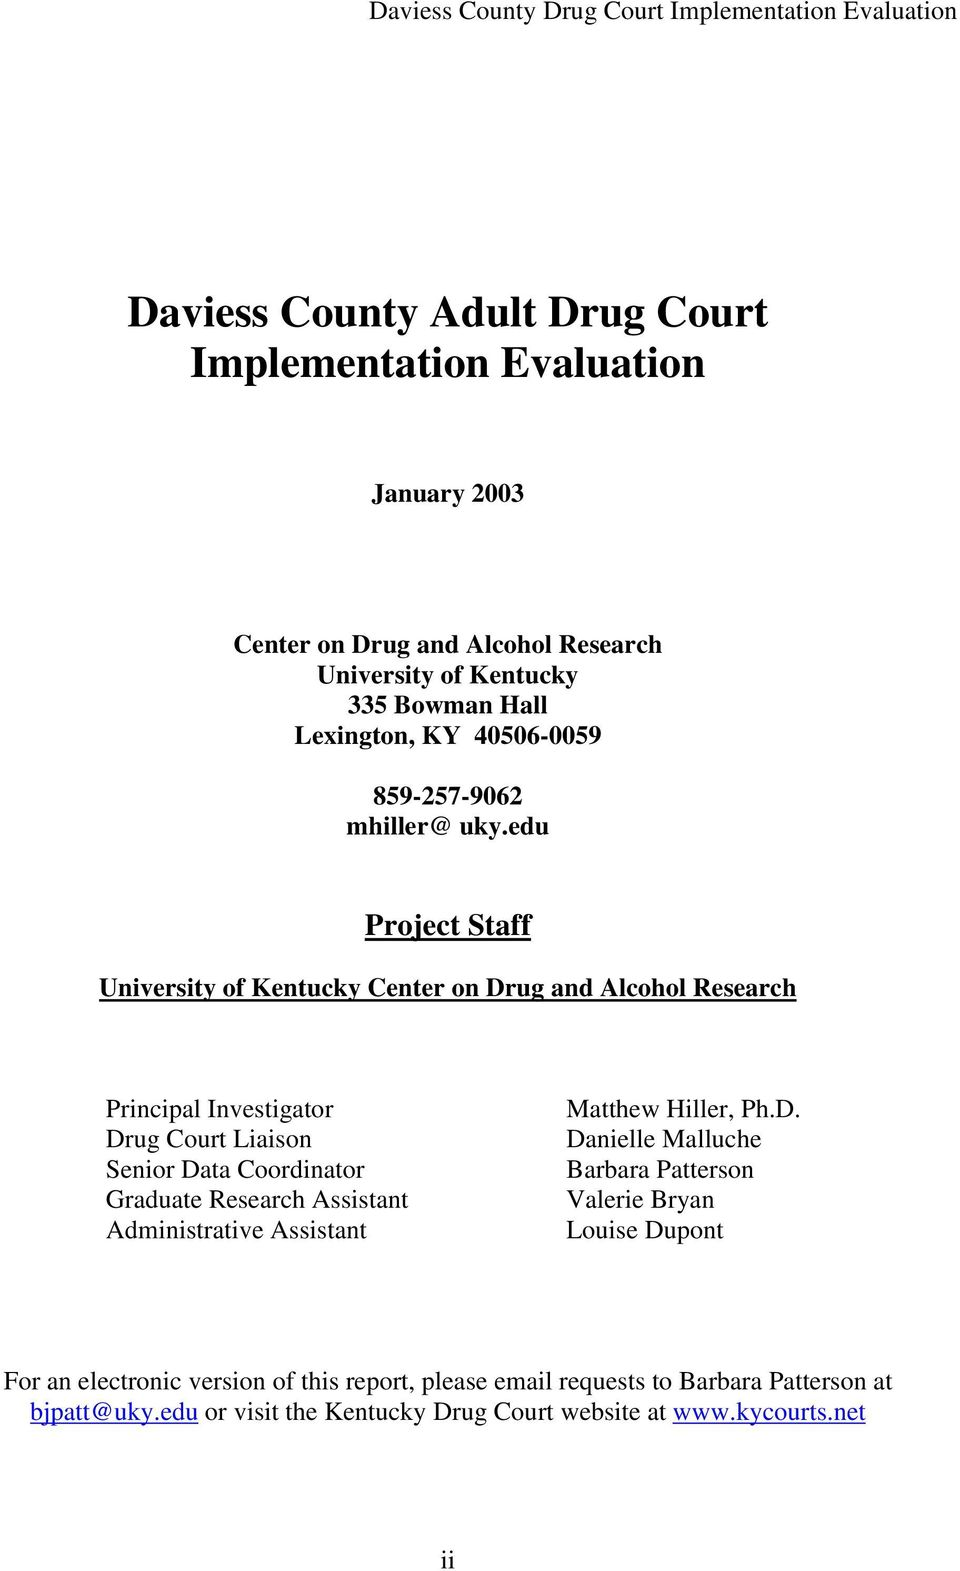 Daviess County Drug Court Implementation Evaluation  Daviess